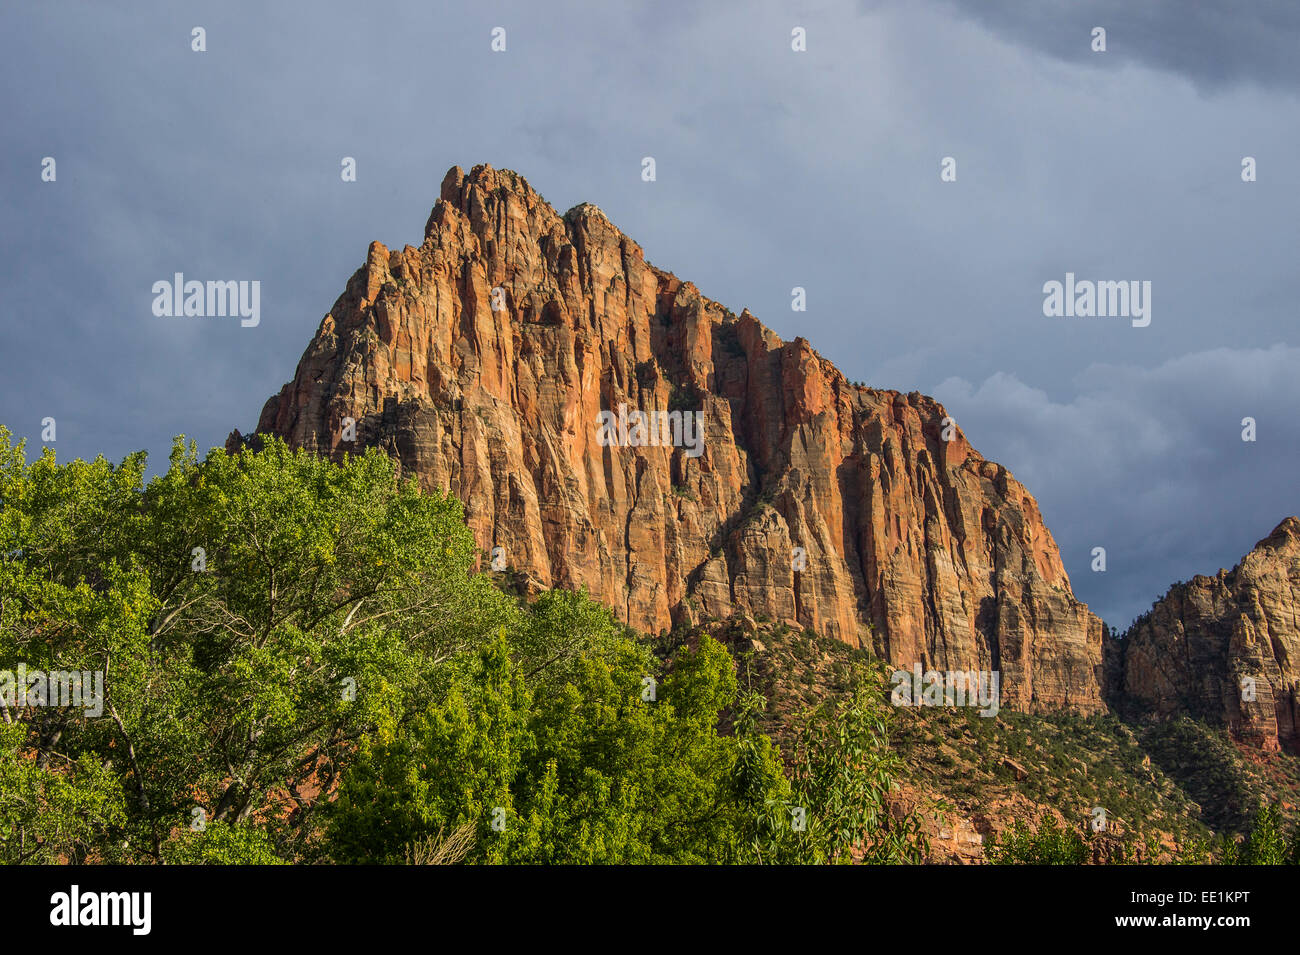 Late sunlight glowing on the rocks of the Zion National Park, Utah, United States of America, North America - Stock Image